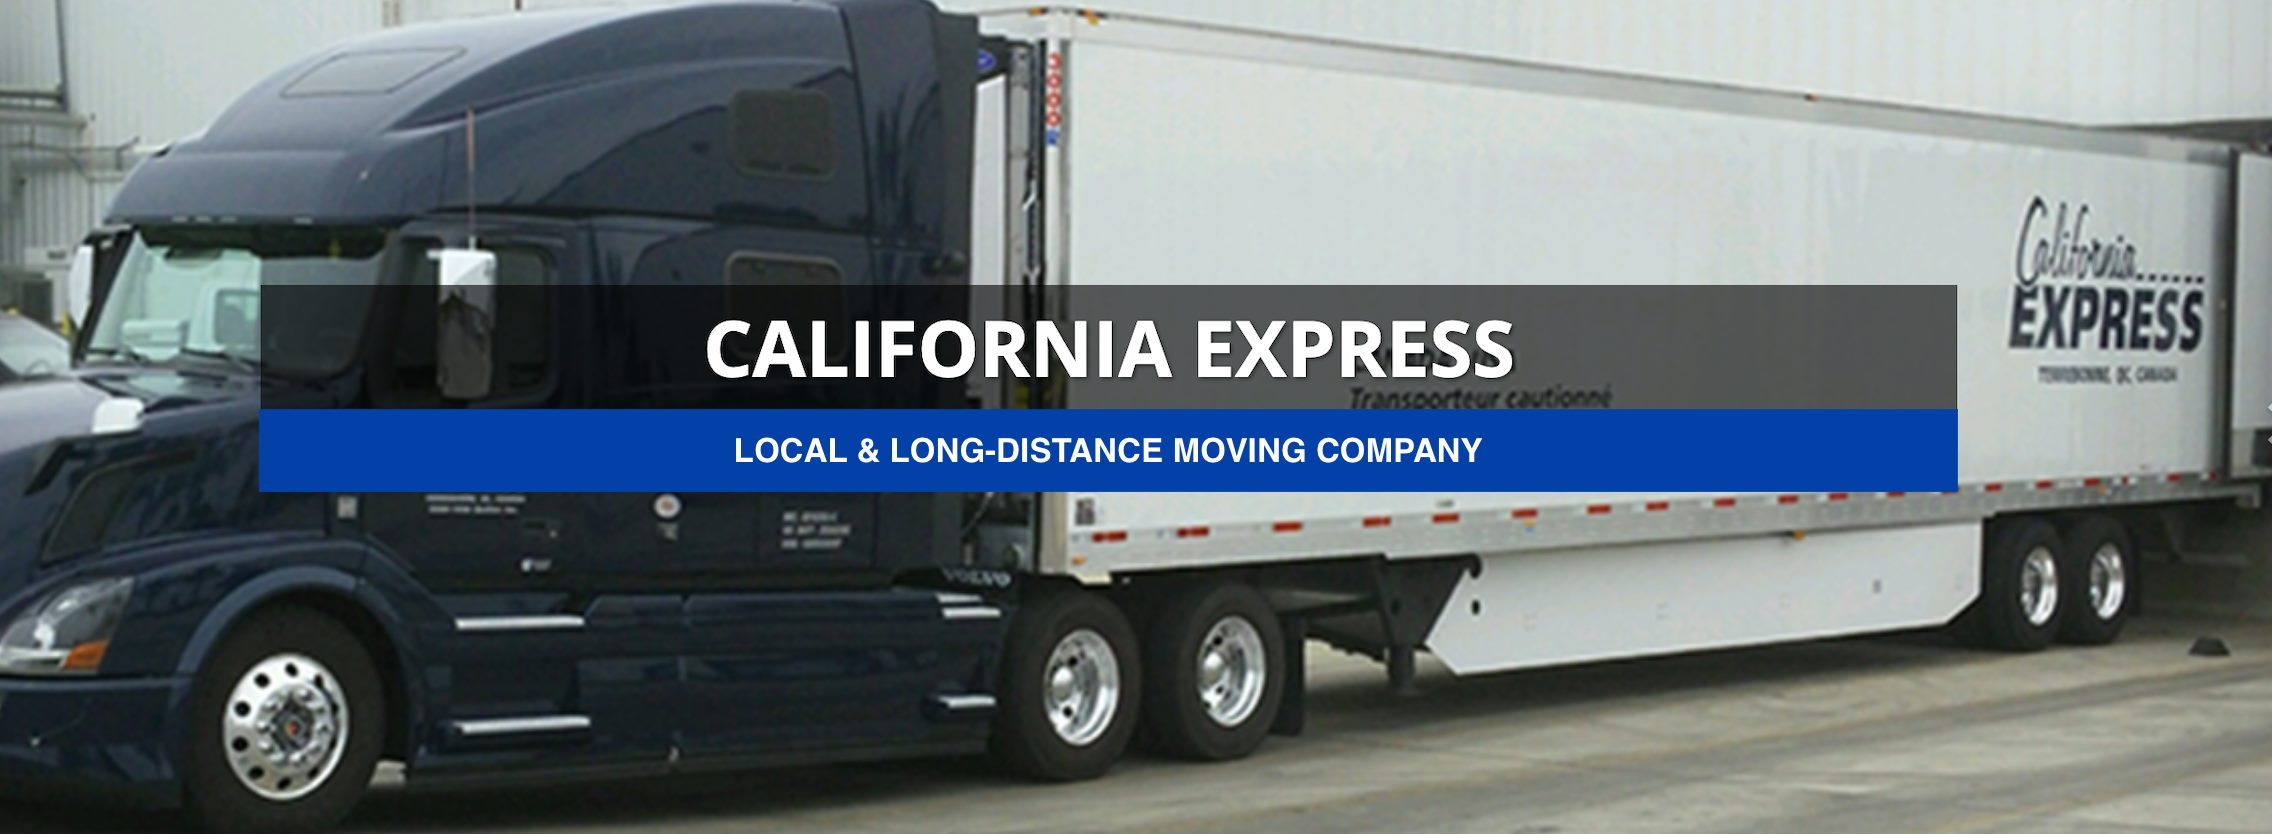 Moving an entire house? Make sure to ask for help from Express Moving Van L...